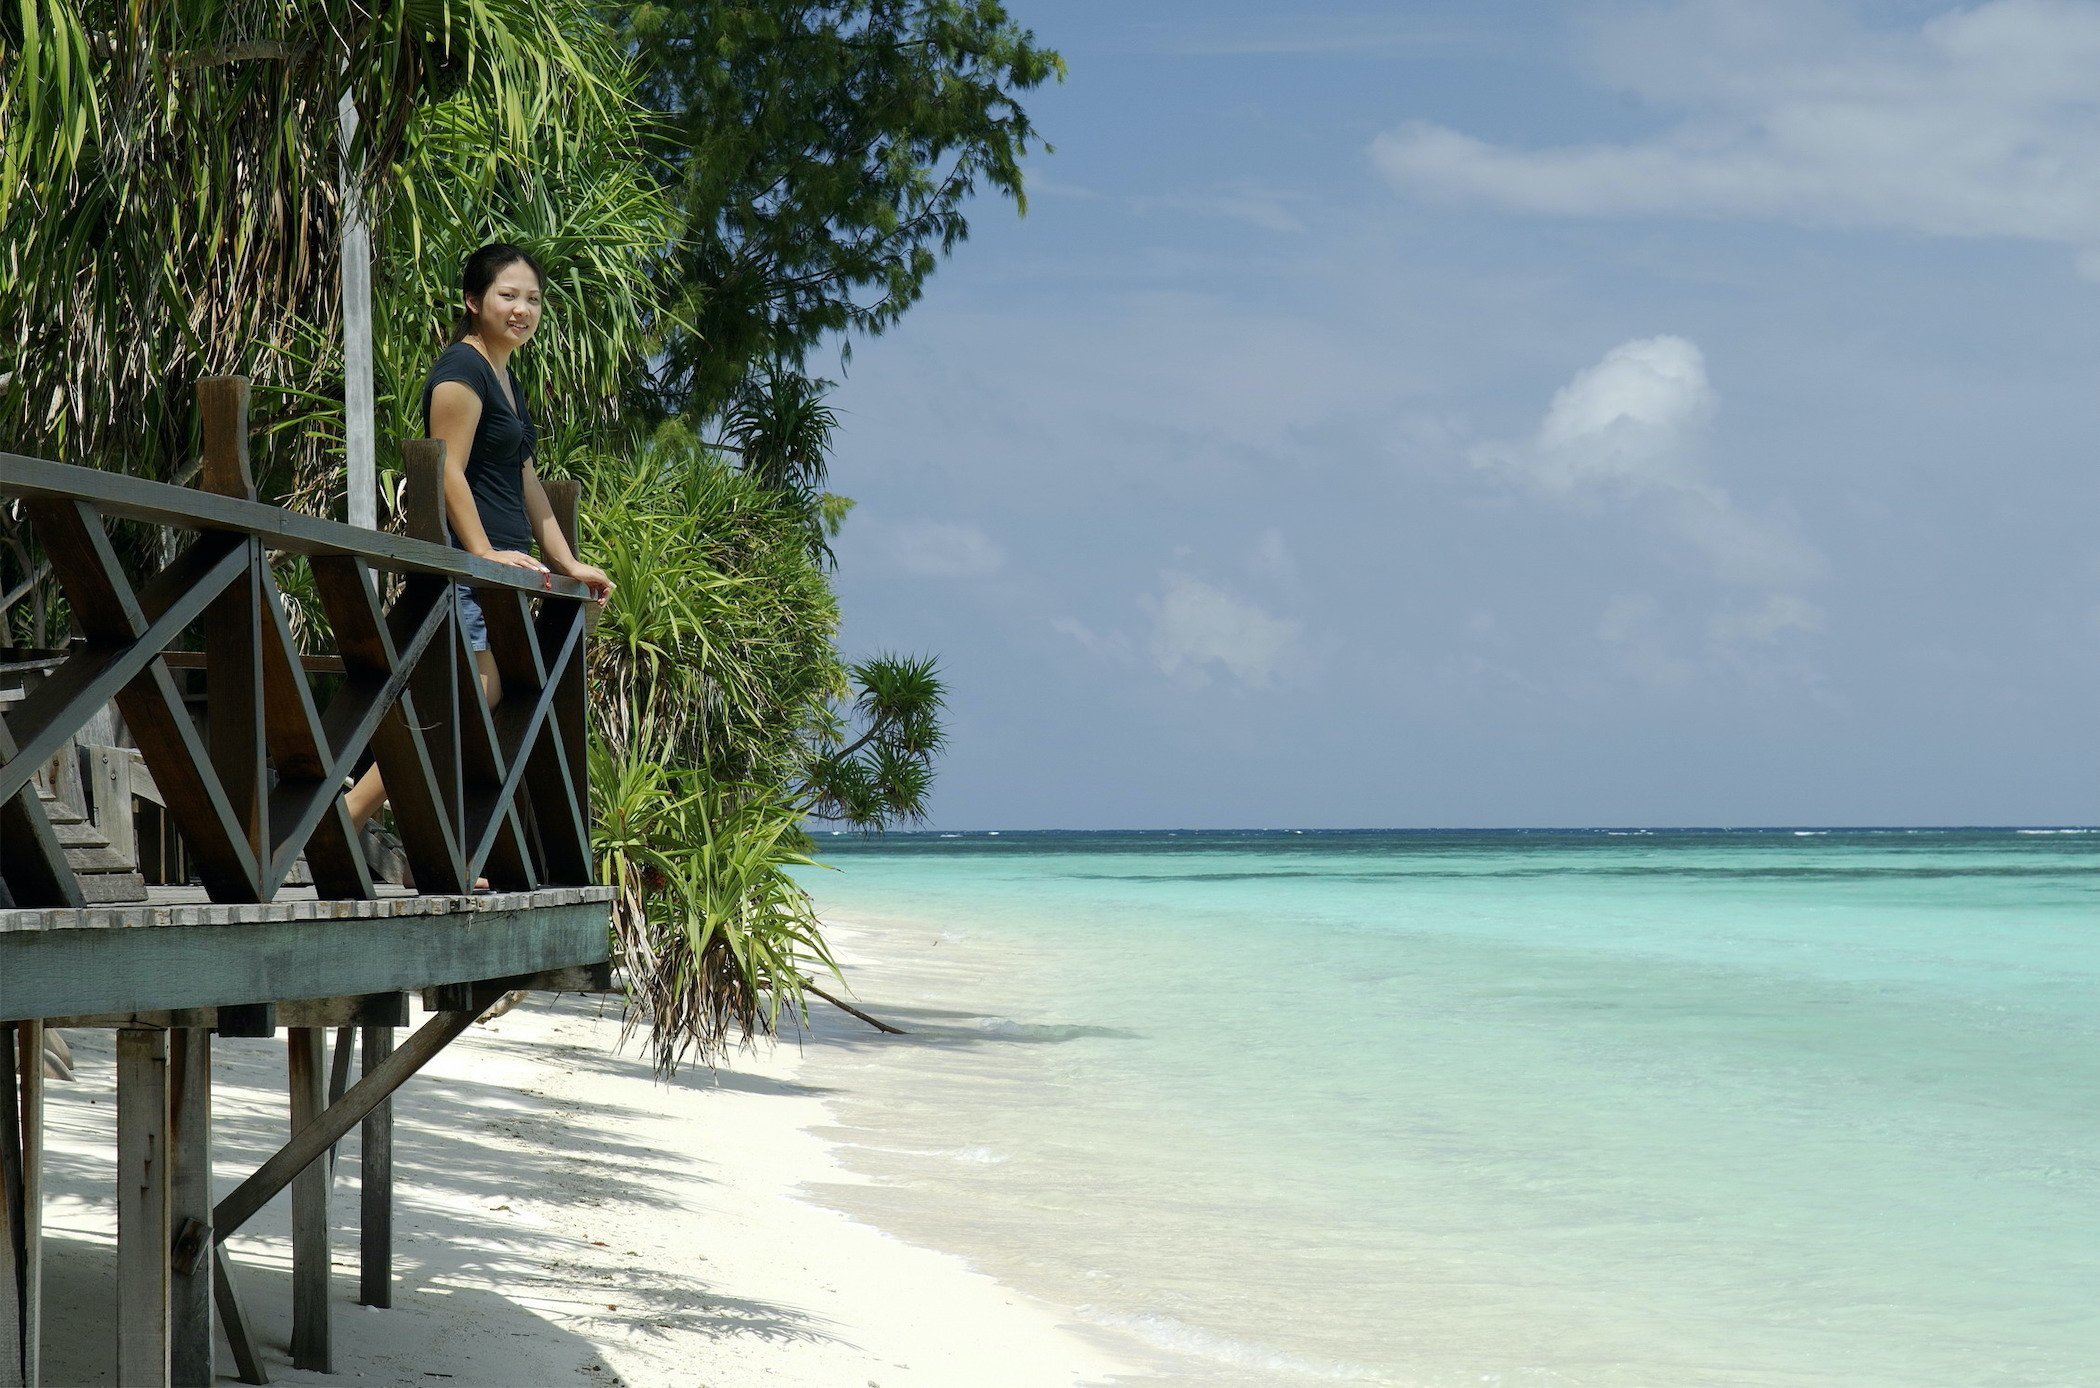 Sundeck overlooking the calm and turquoise water of Lankayan Island